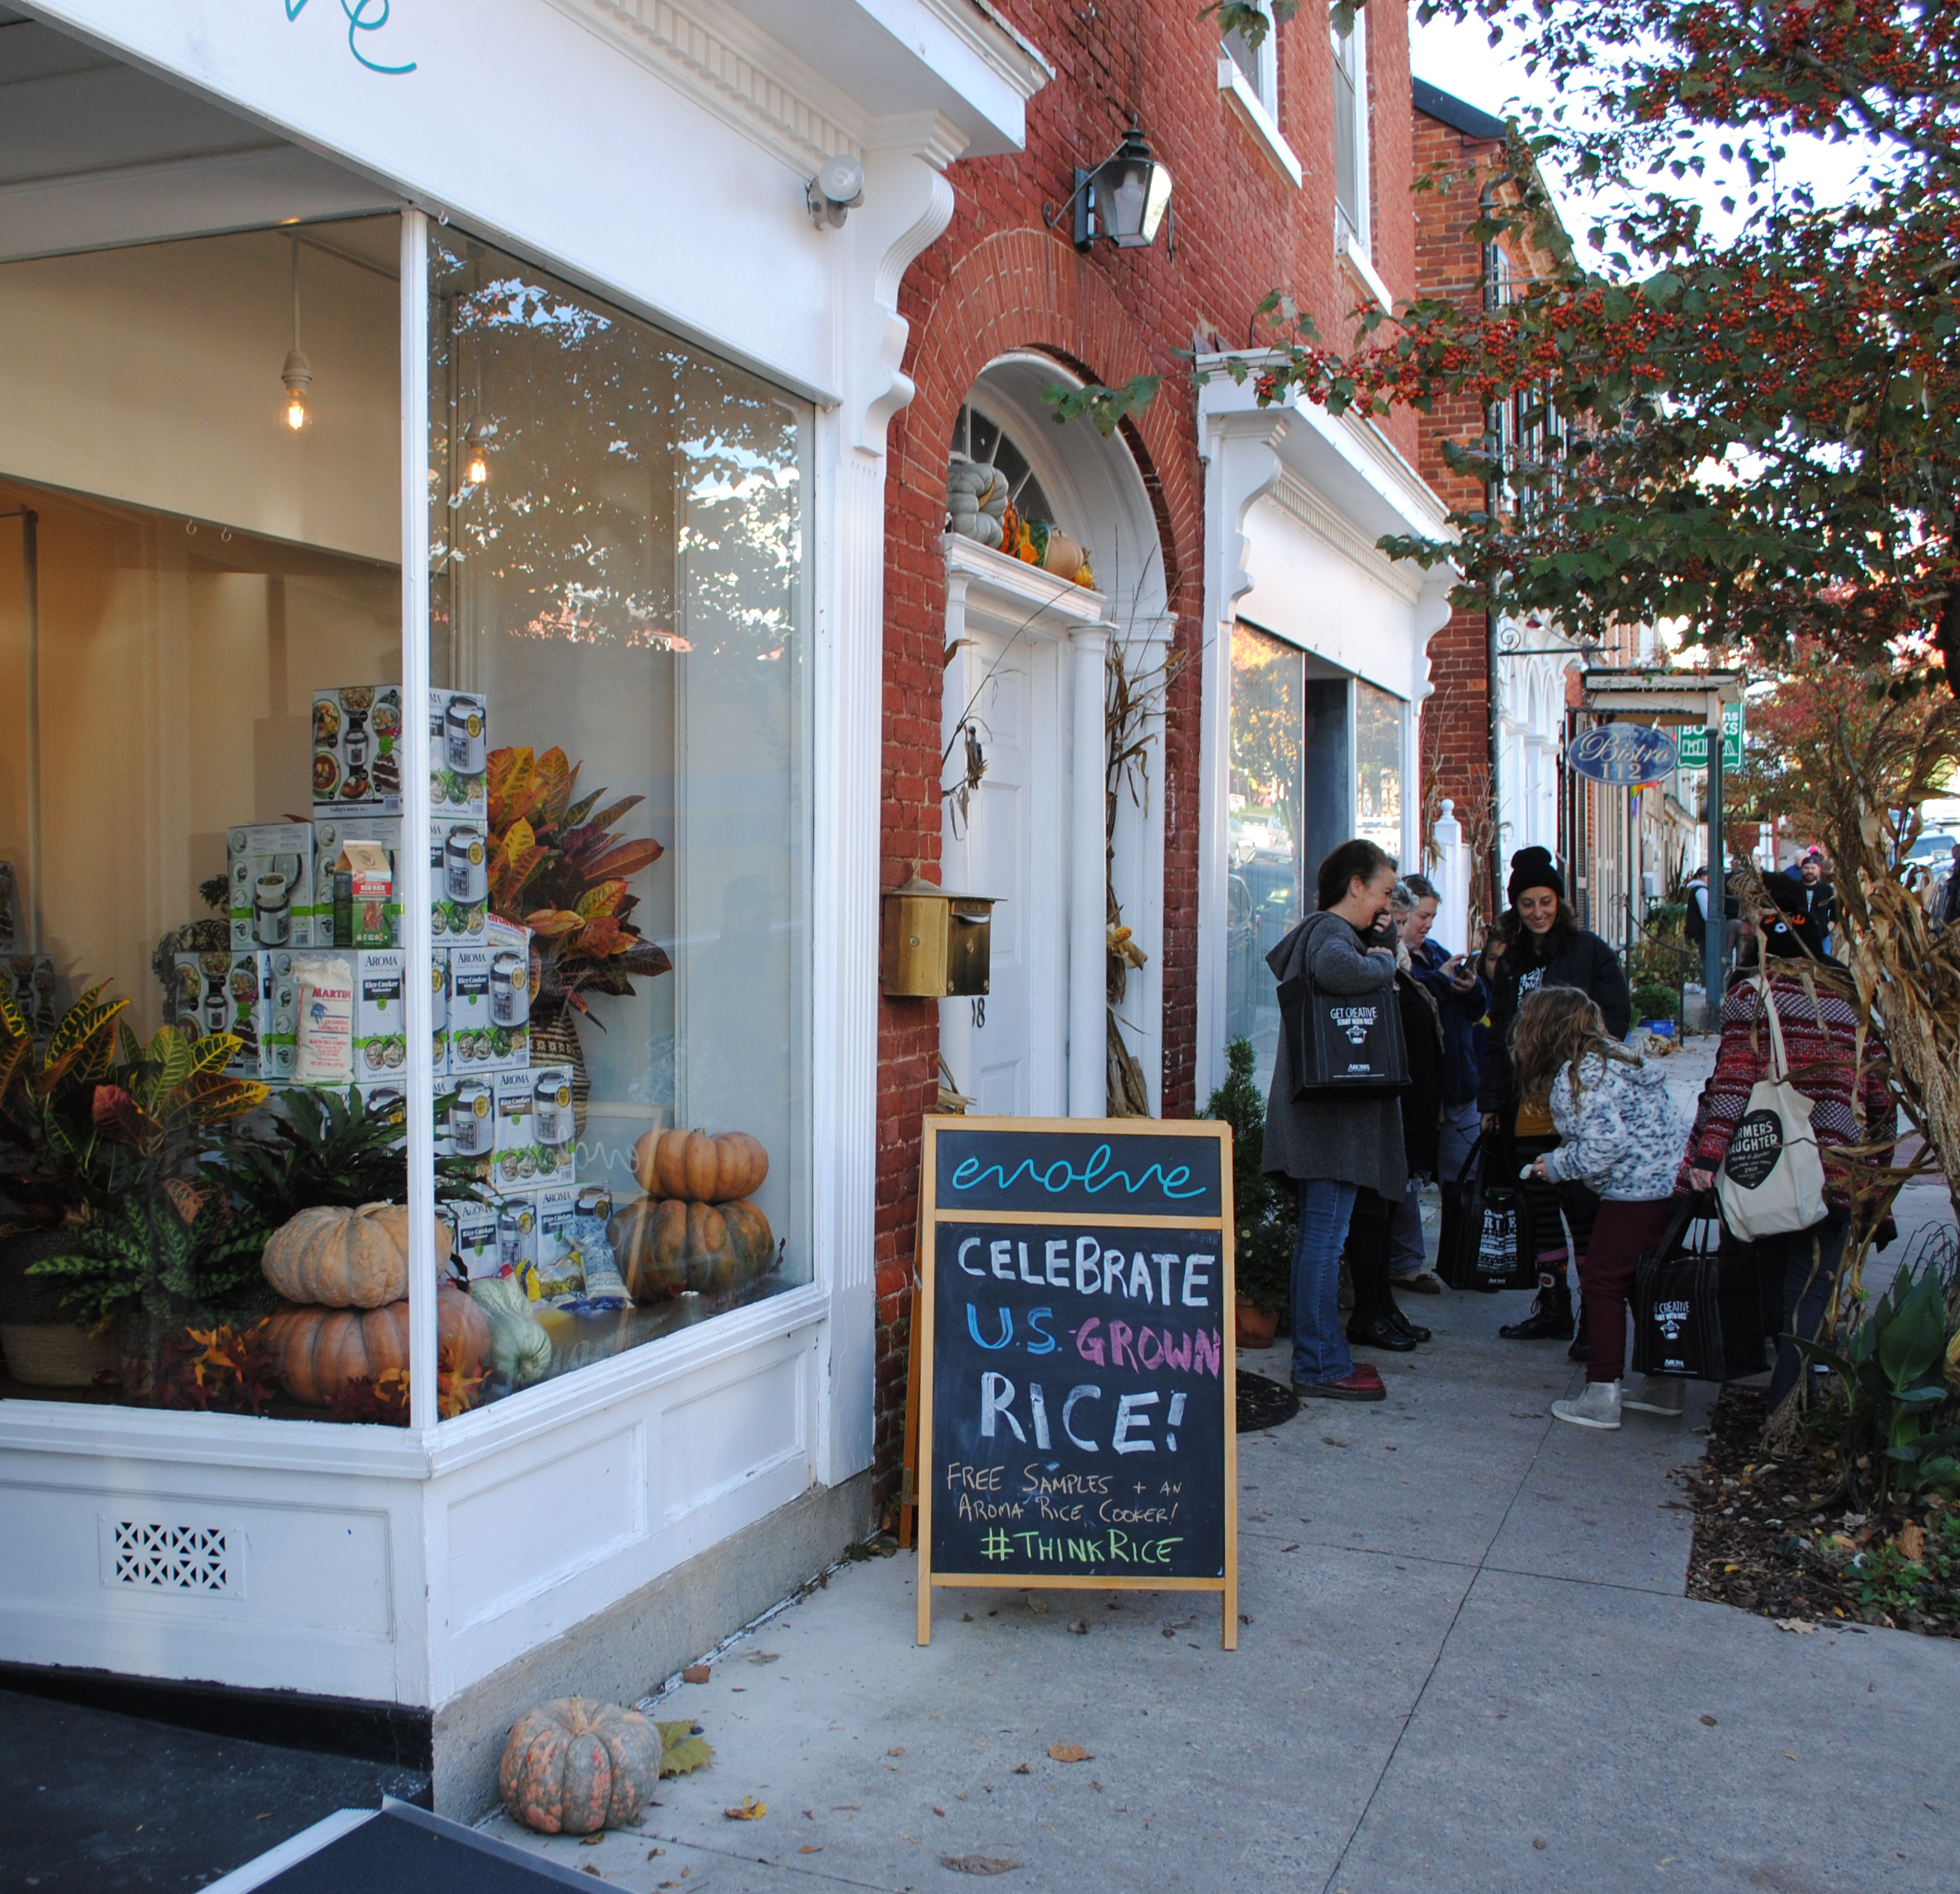 Sign outside storefront reads: Celebrate U.S. Grown Rice! Stack of rice cookers and pumpkins in store window, people standing outside on sidewalk